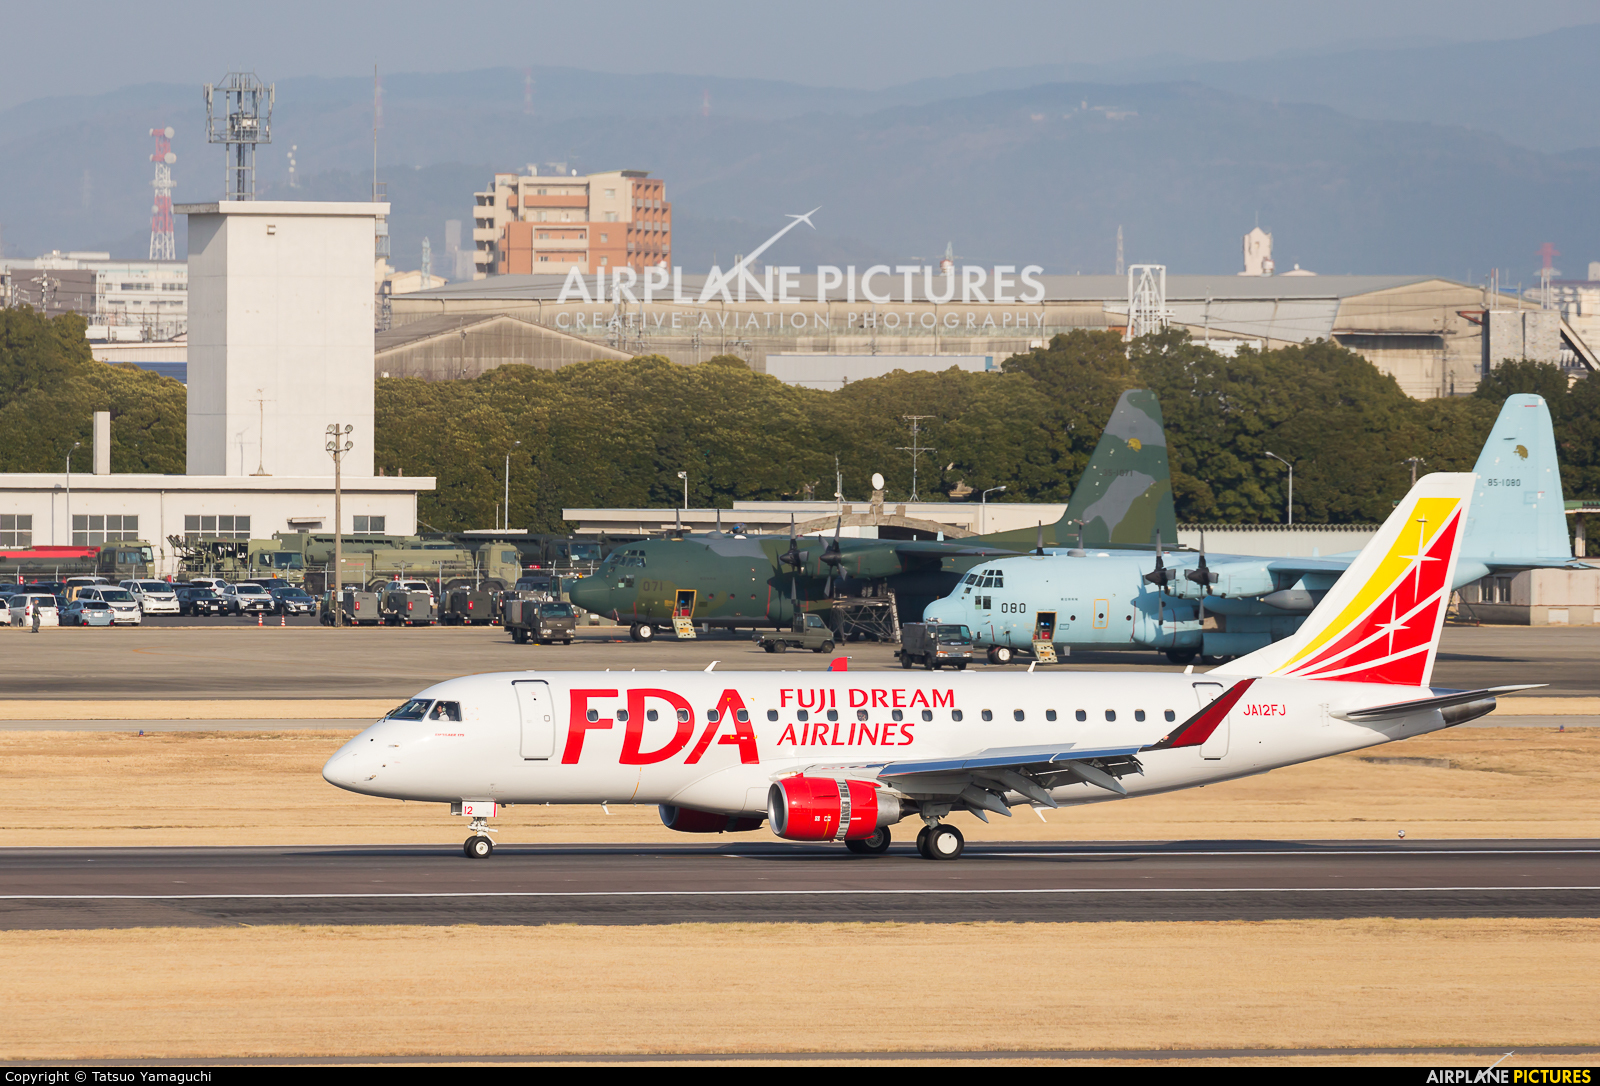 Fuji Dream Airlines JA12FJ aircraft at Nagoya - Komaki AB